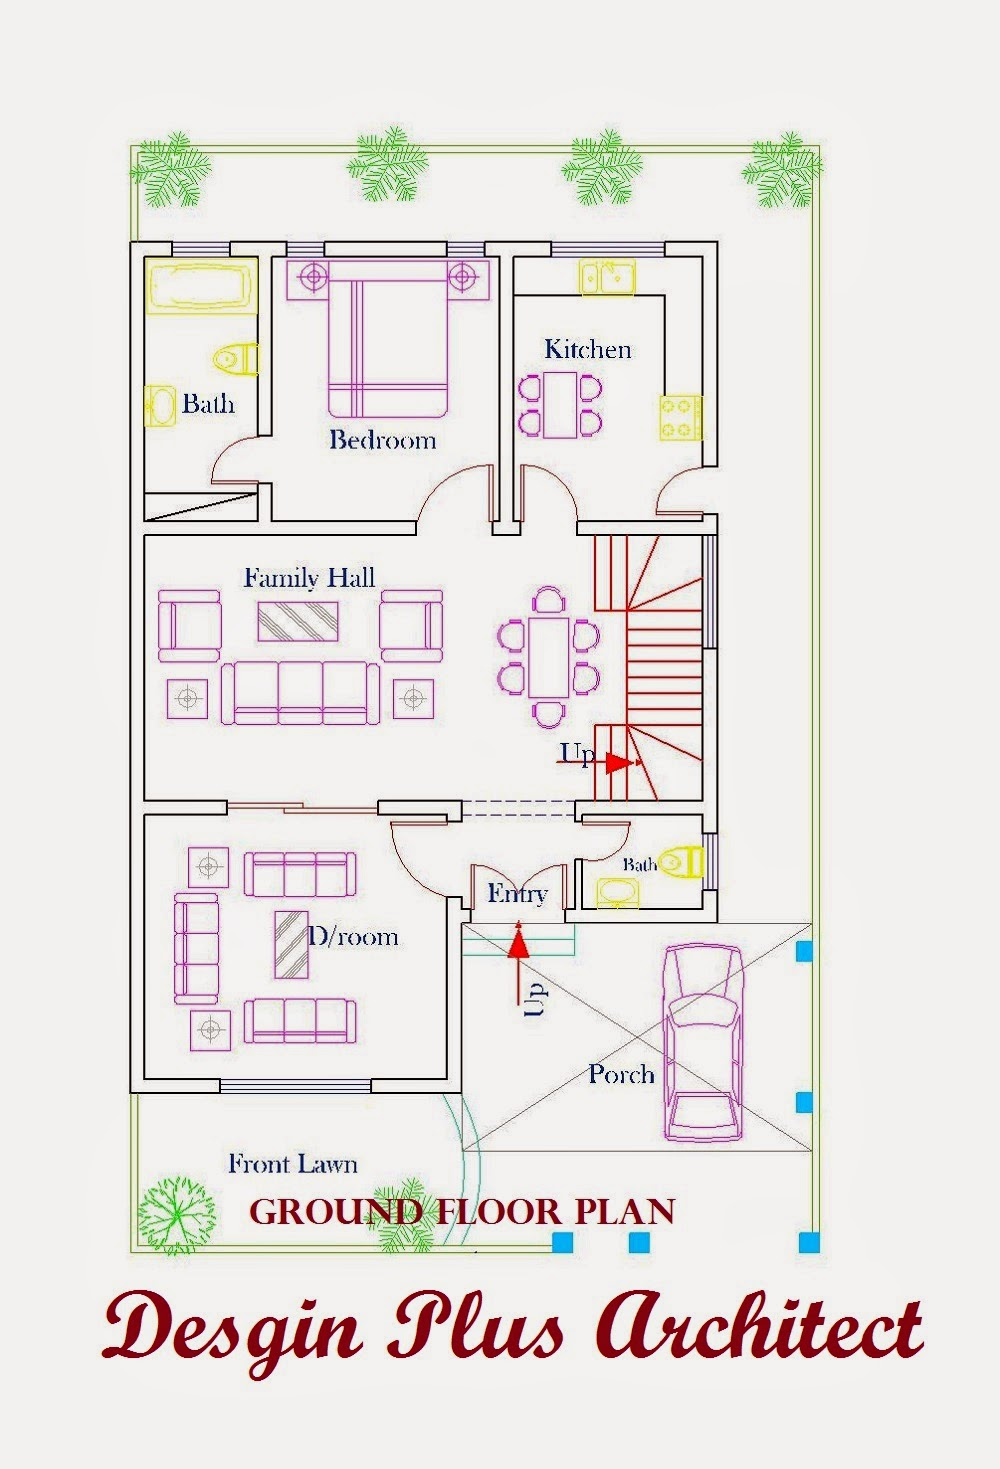 Home Plans In Pakistan, Home Decor, Architect Designer ...